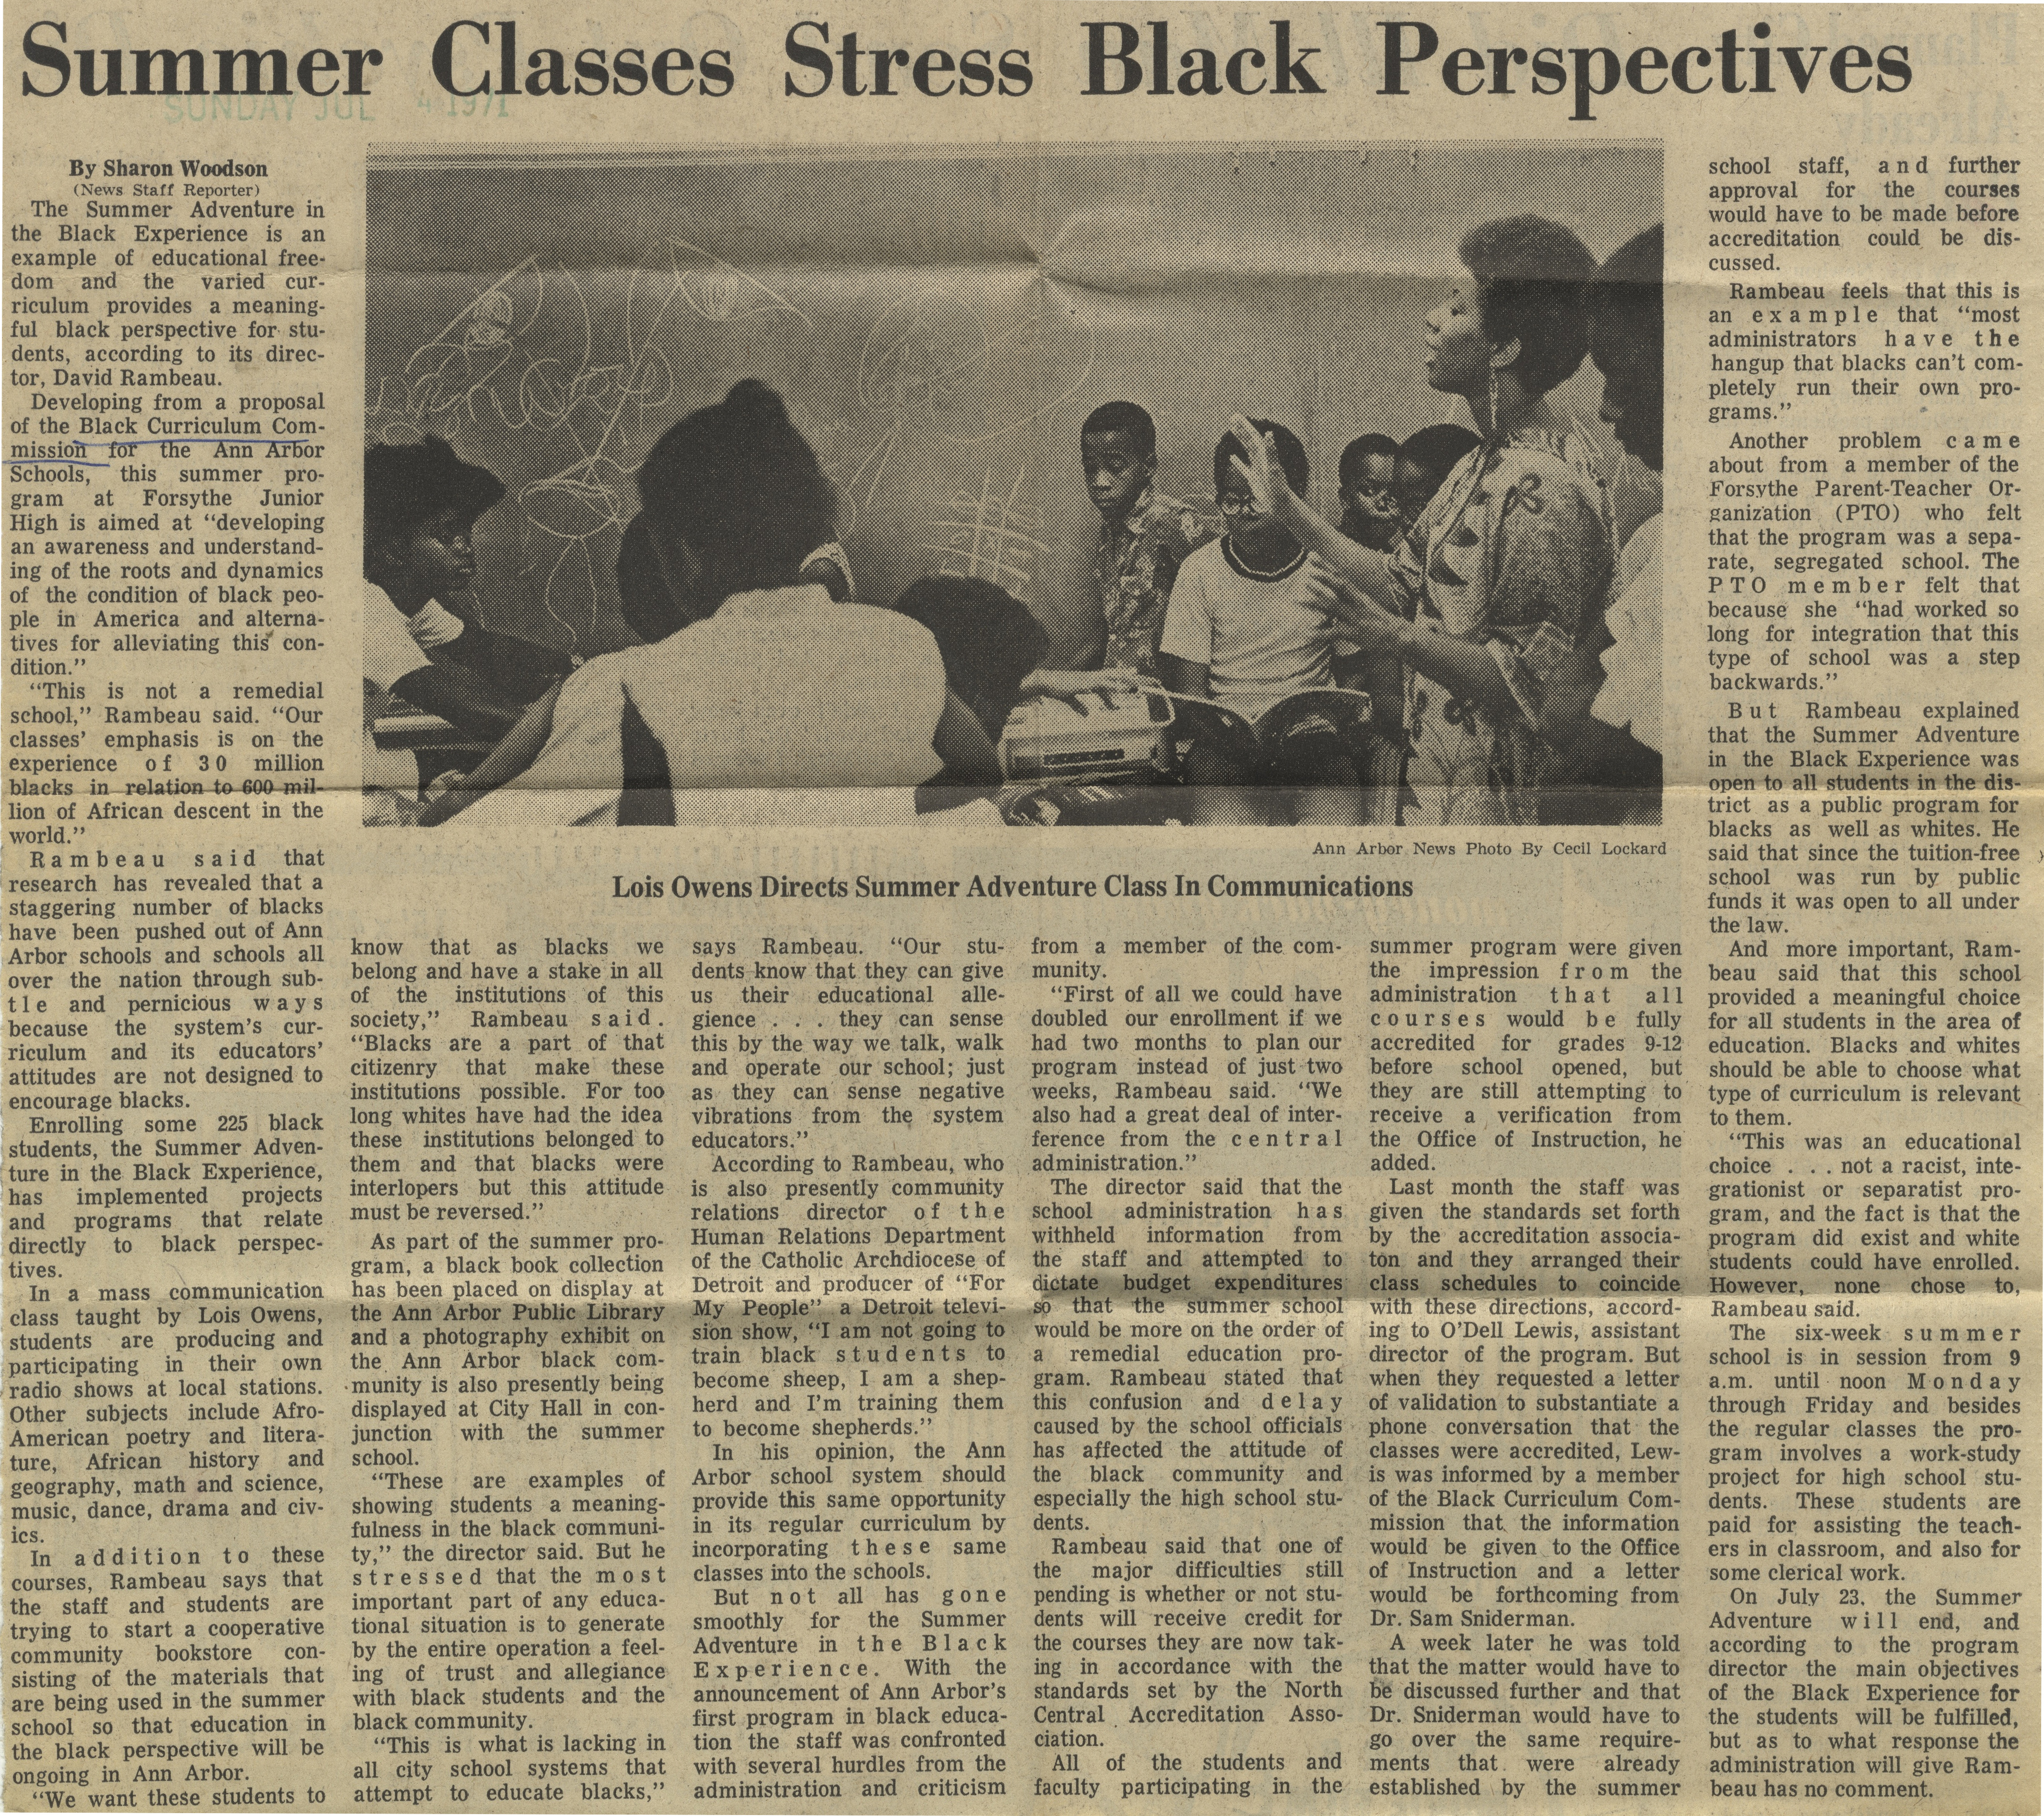 Summer Classes Stress Black Perspectives image